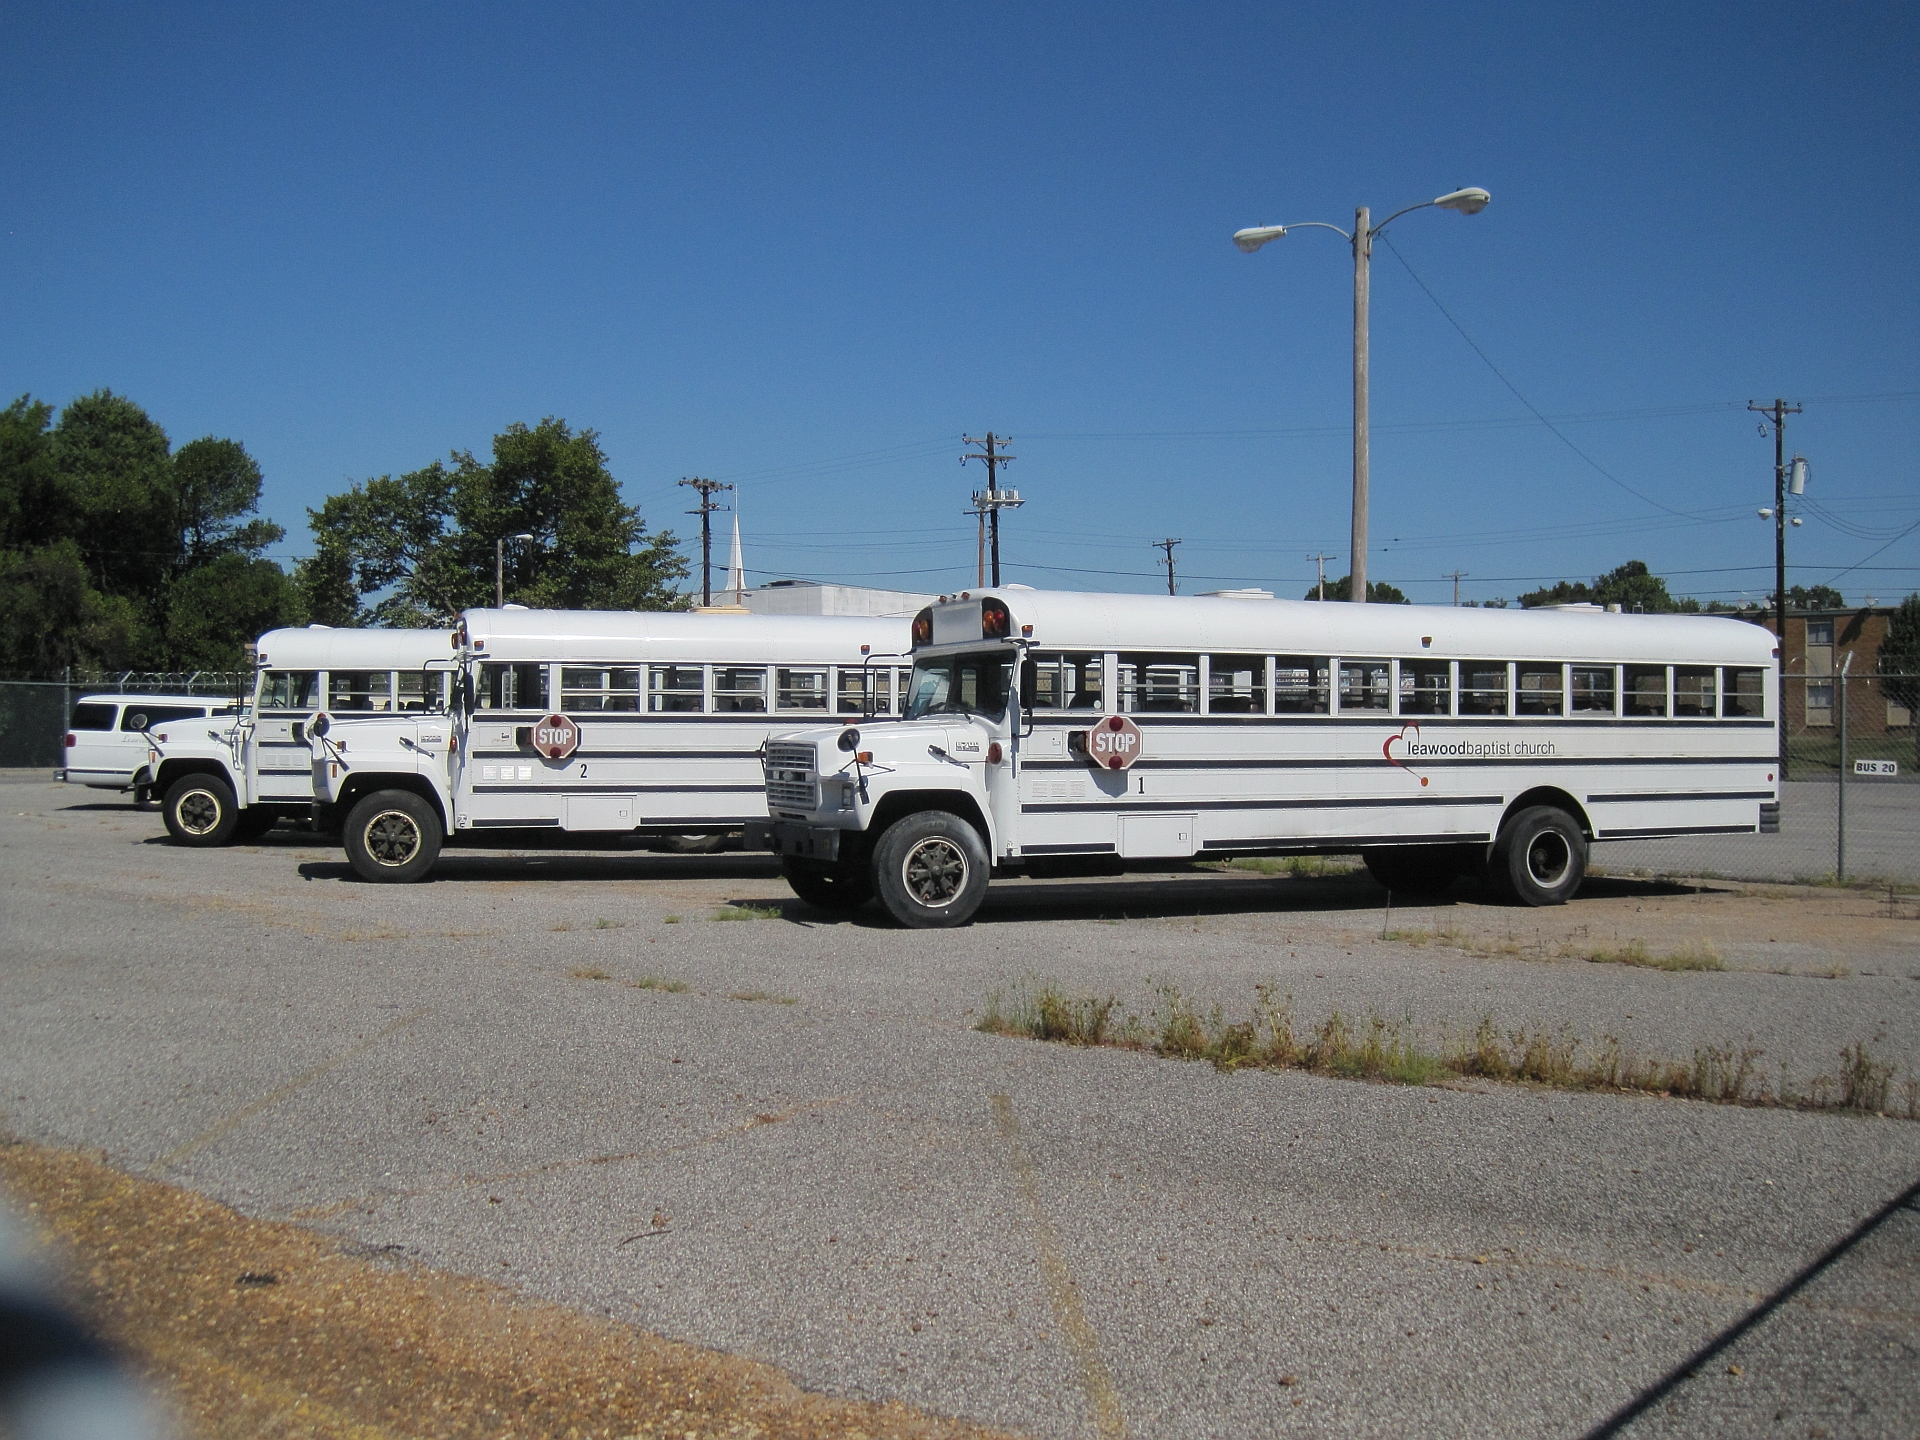 Church buses in Memphis, Tennessee